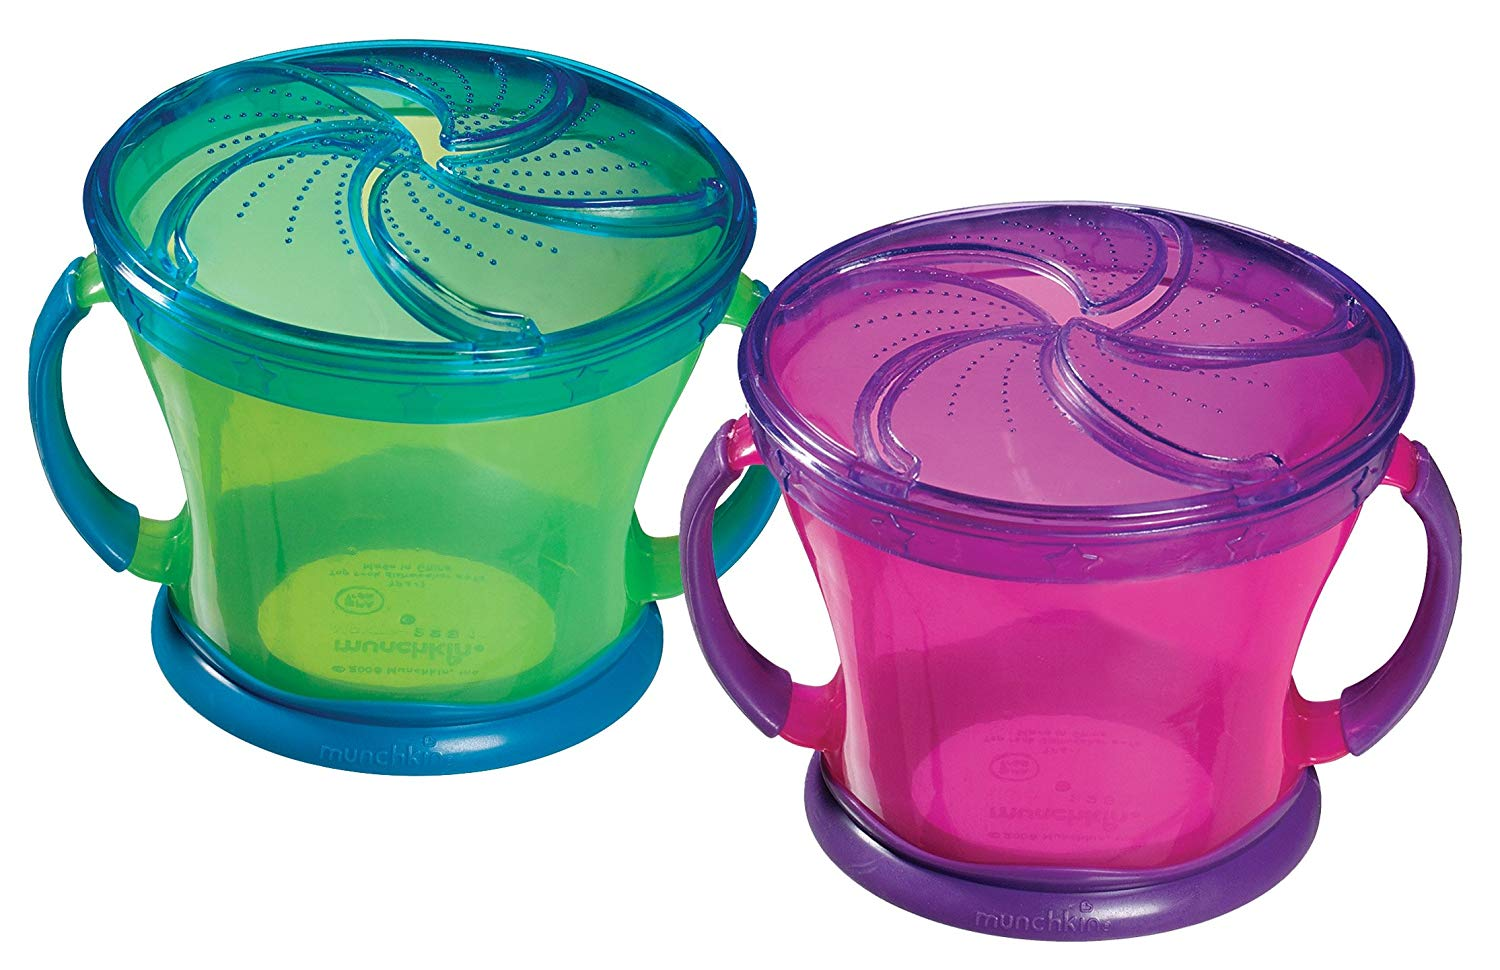 Munchkin Brand Plastic Snack Cup: Negative (Non-Detect) for Lead, Mercury, Cadmium & Arsenic.